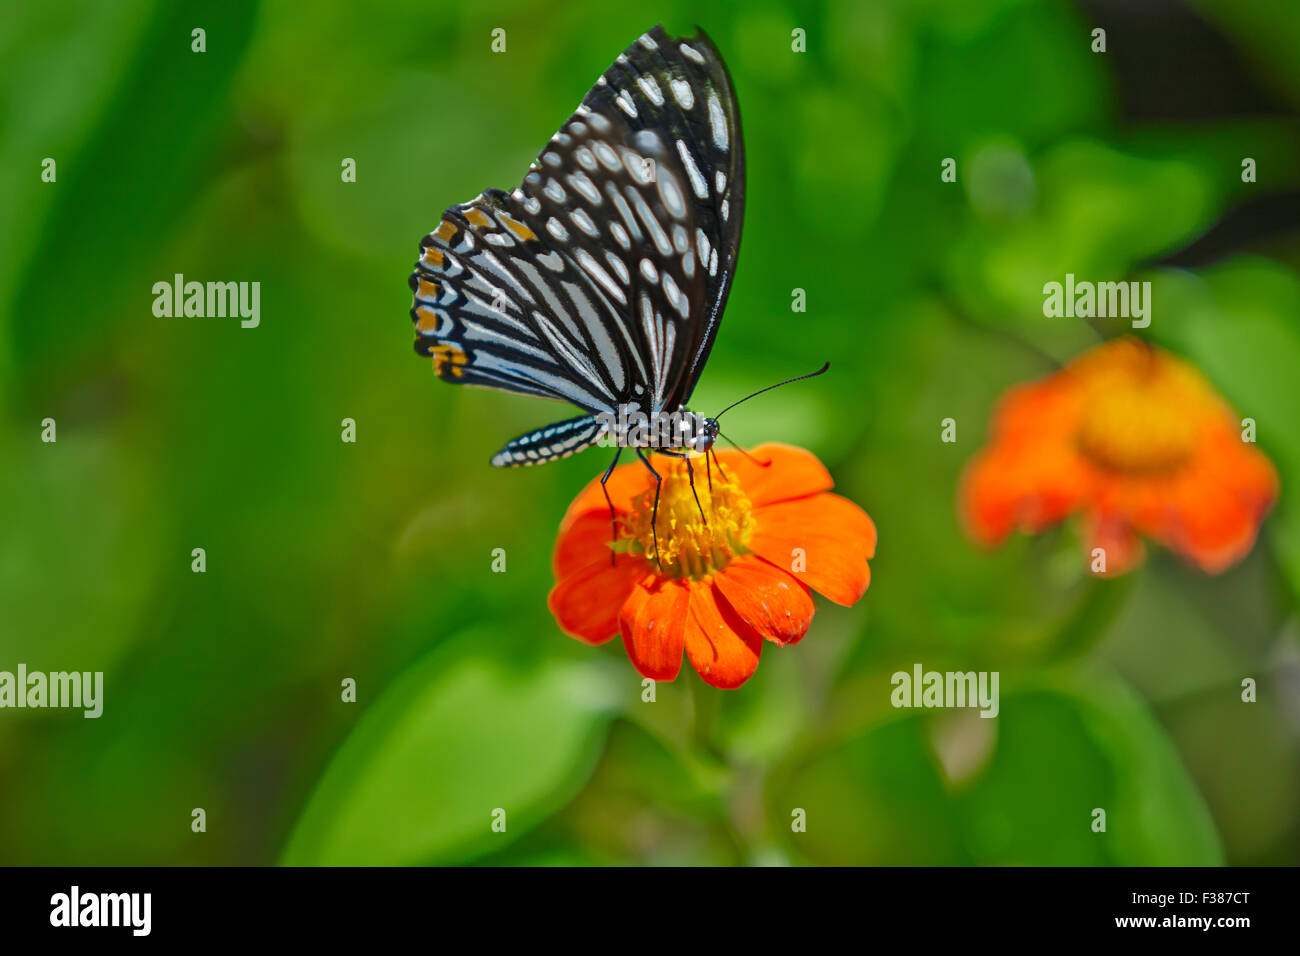 Le Mime commun forme Papillon, Dissimilis sur une fleur. Nom scientifique : Papilio clytia. Papillon de Banteay Photo Stock